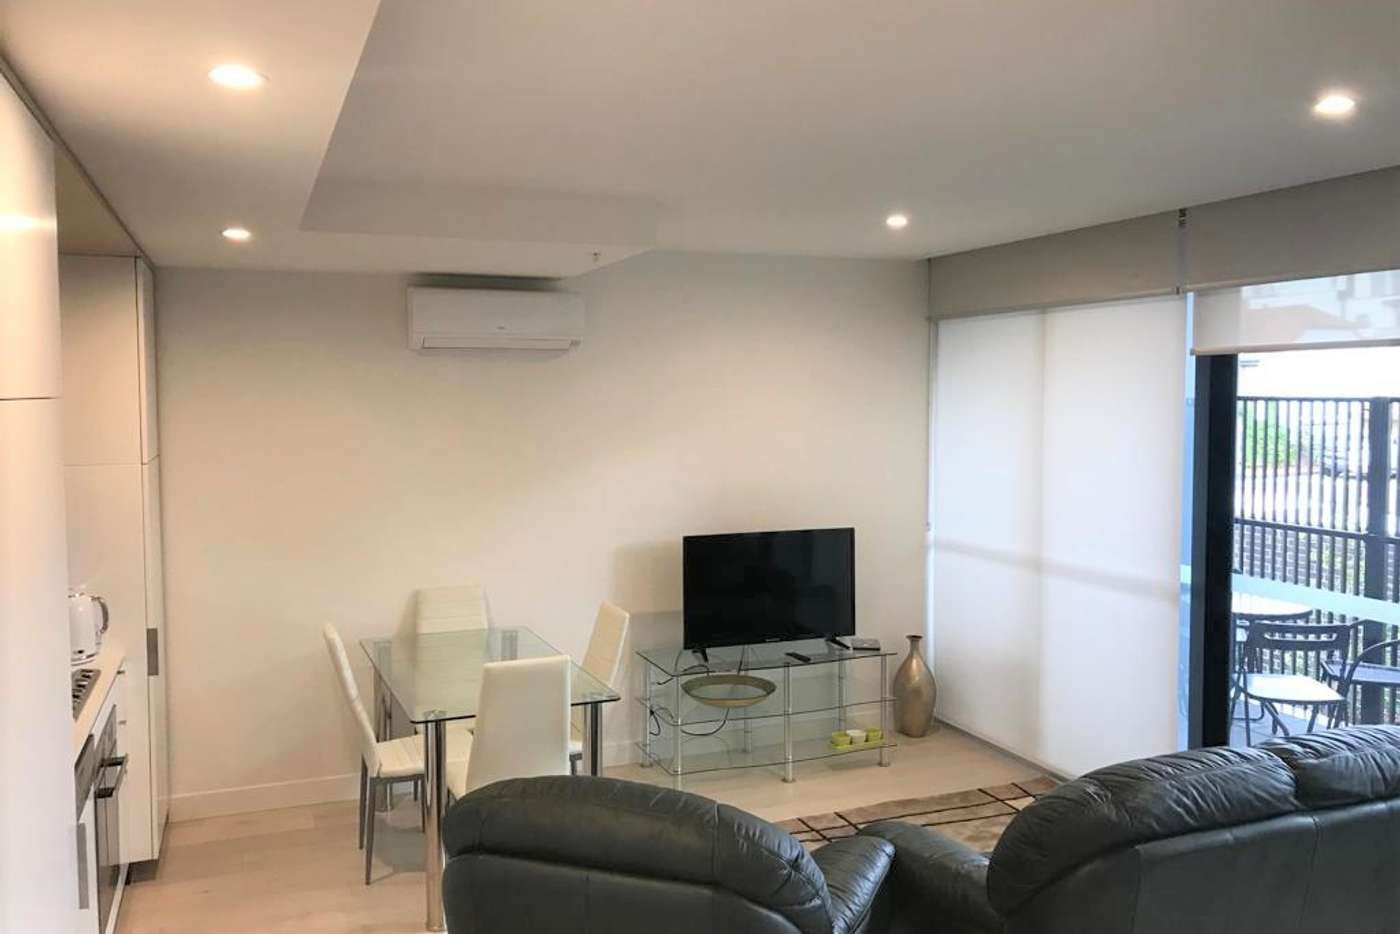 Sixth view of Homely apartment listing, Address available on request